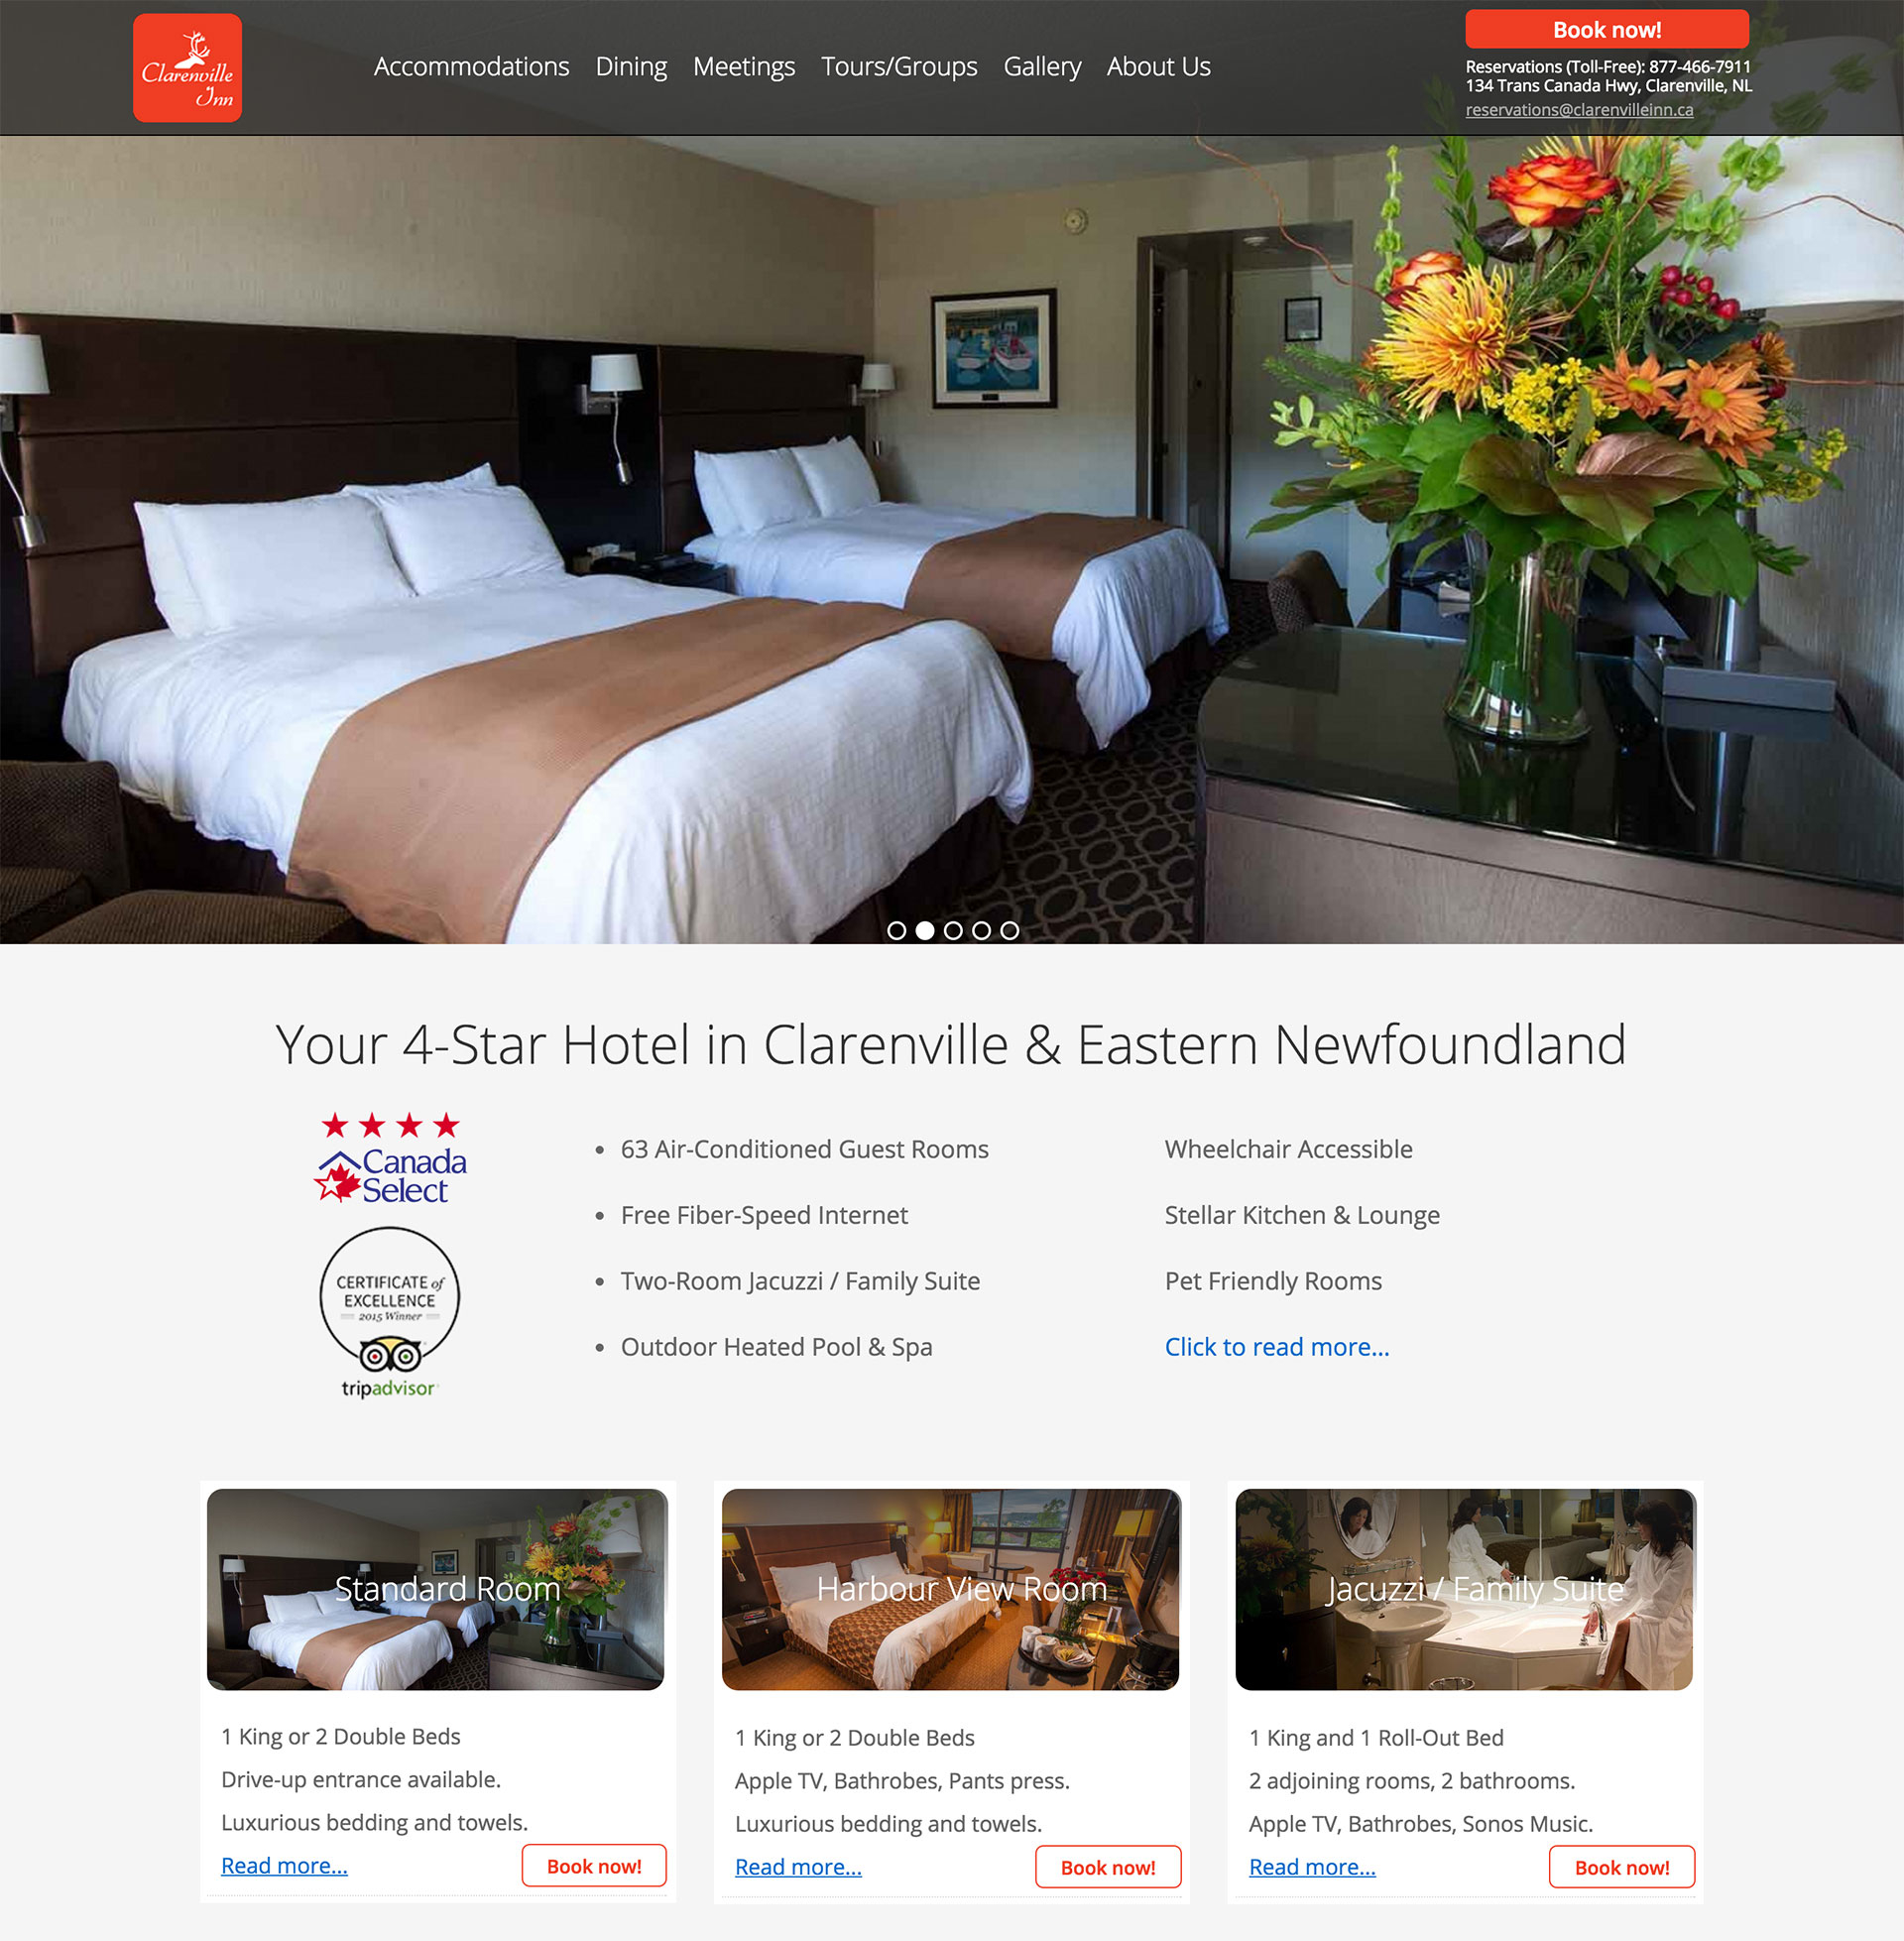 Lorne Pike & Associates in St. John's: The fully remodeled Clarenville Inn wanted a mobile-ready website that allowed online booking and showed their impressive range of local and hotel photos and videos. We delivered, and their guests love the view!